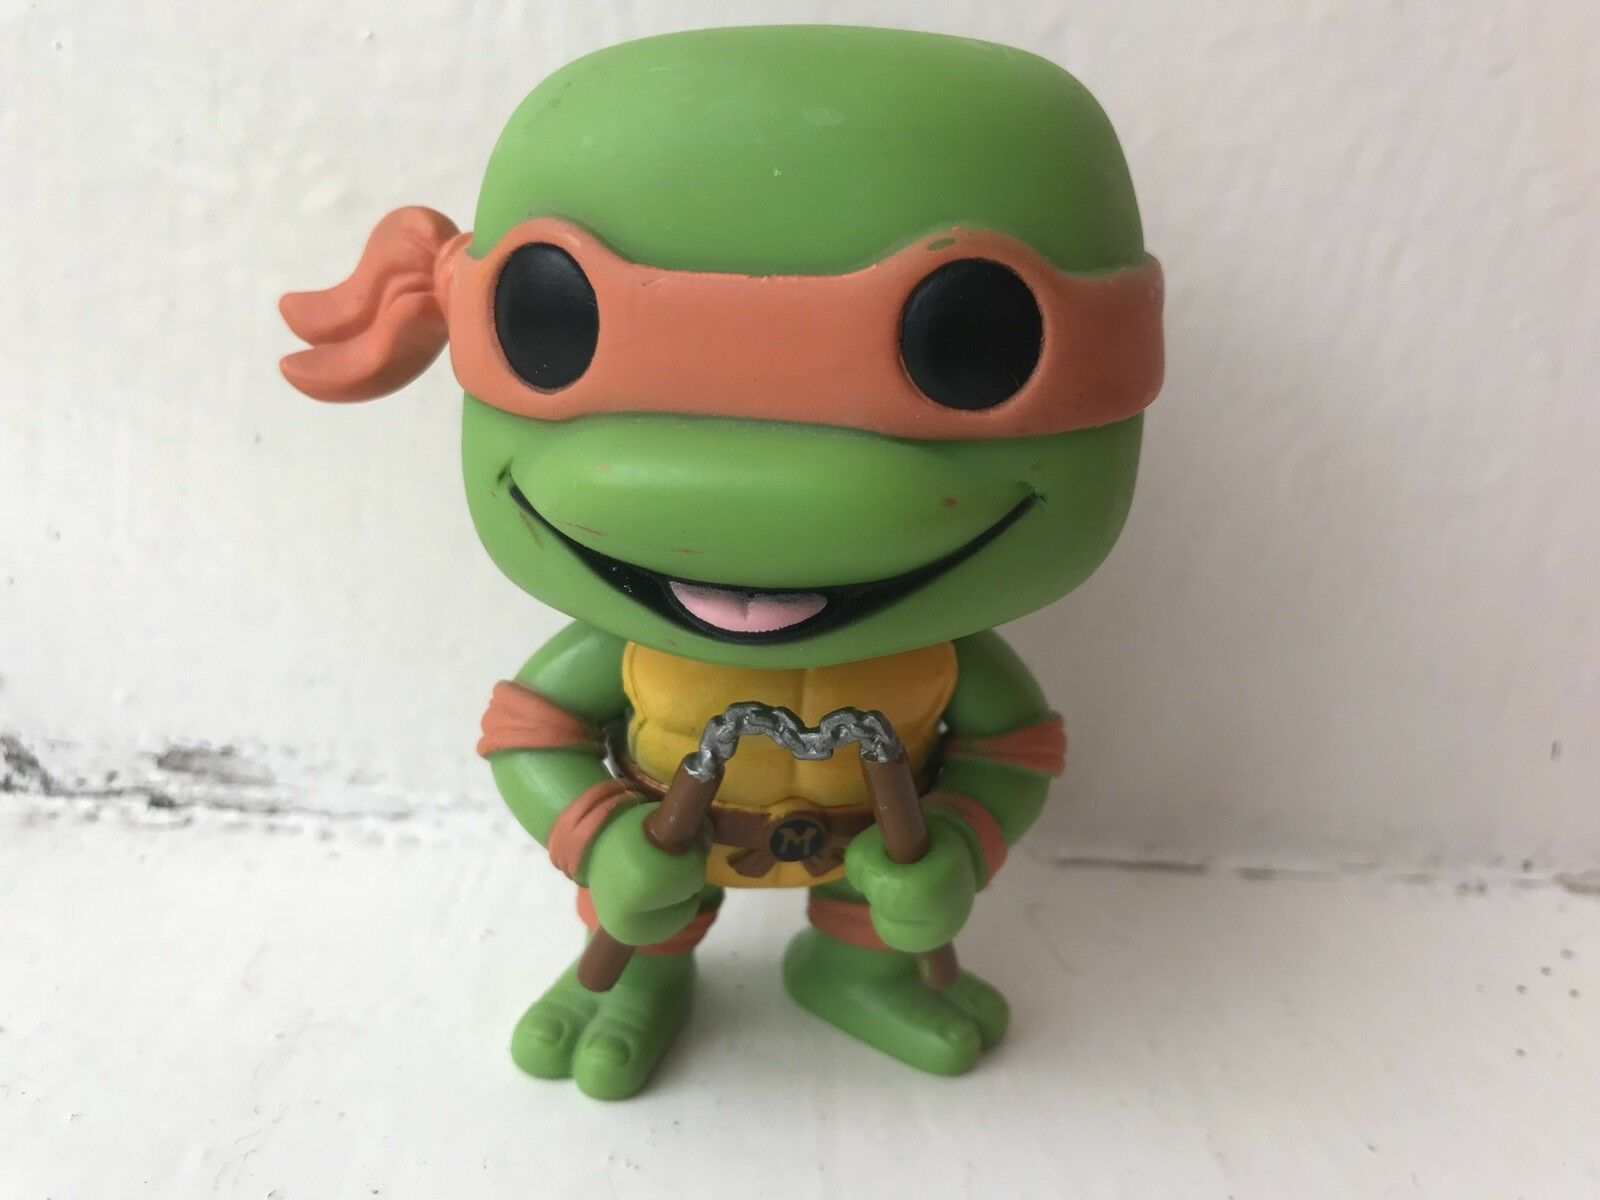 FUNKO POP VINYL TEENAGE MUTANT NINJA TURTLES TMNT MICHELANGELO  62 FIGURE SERIES